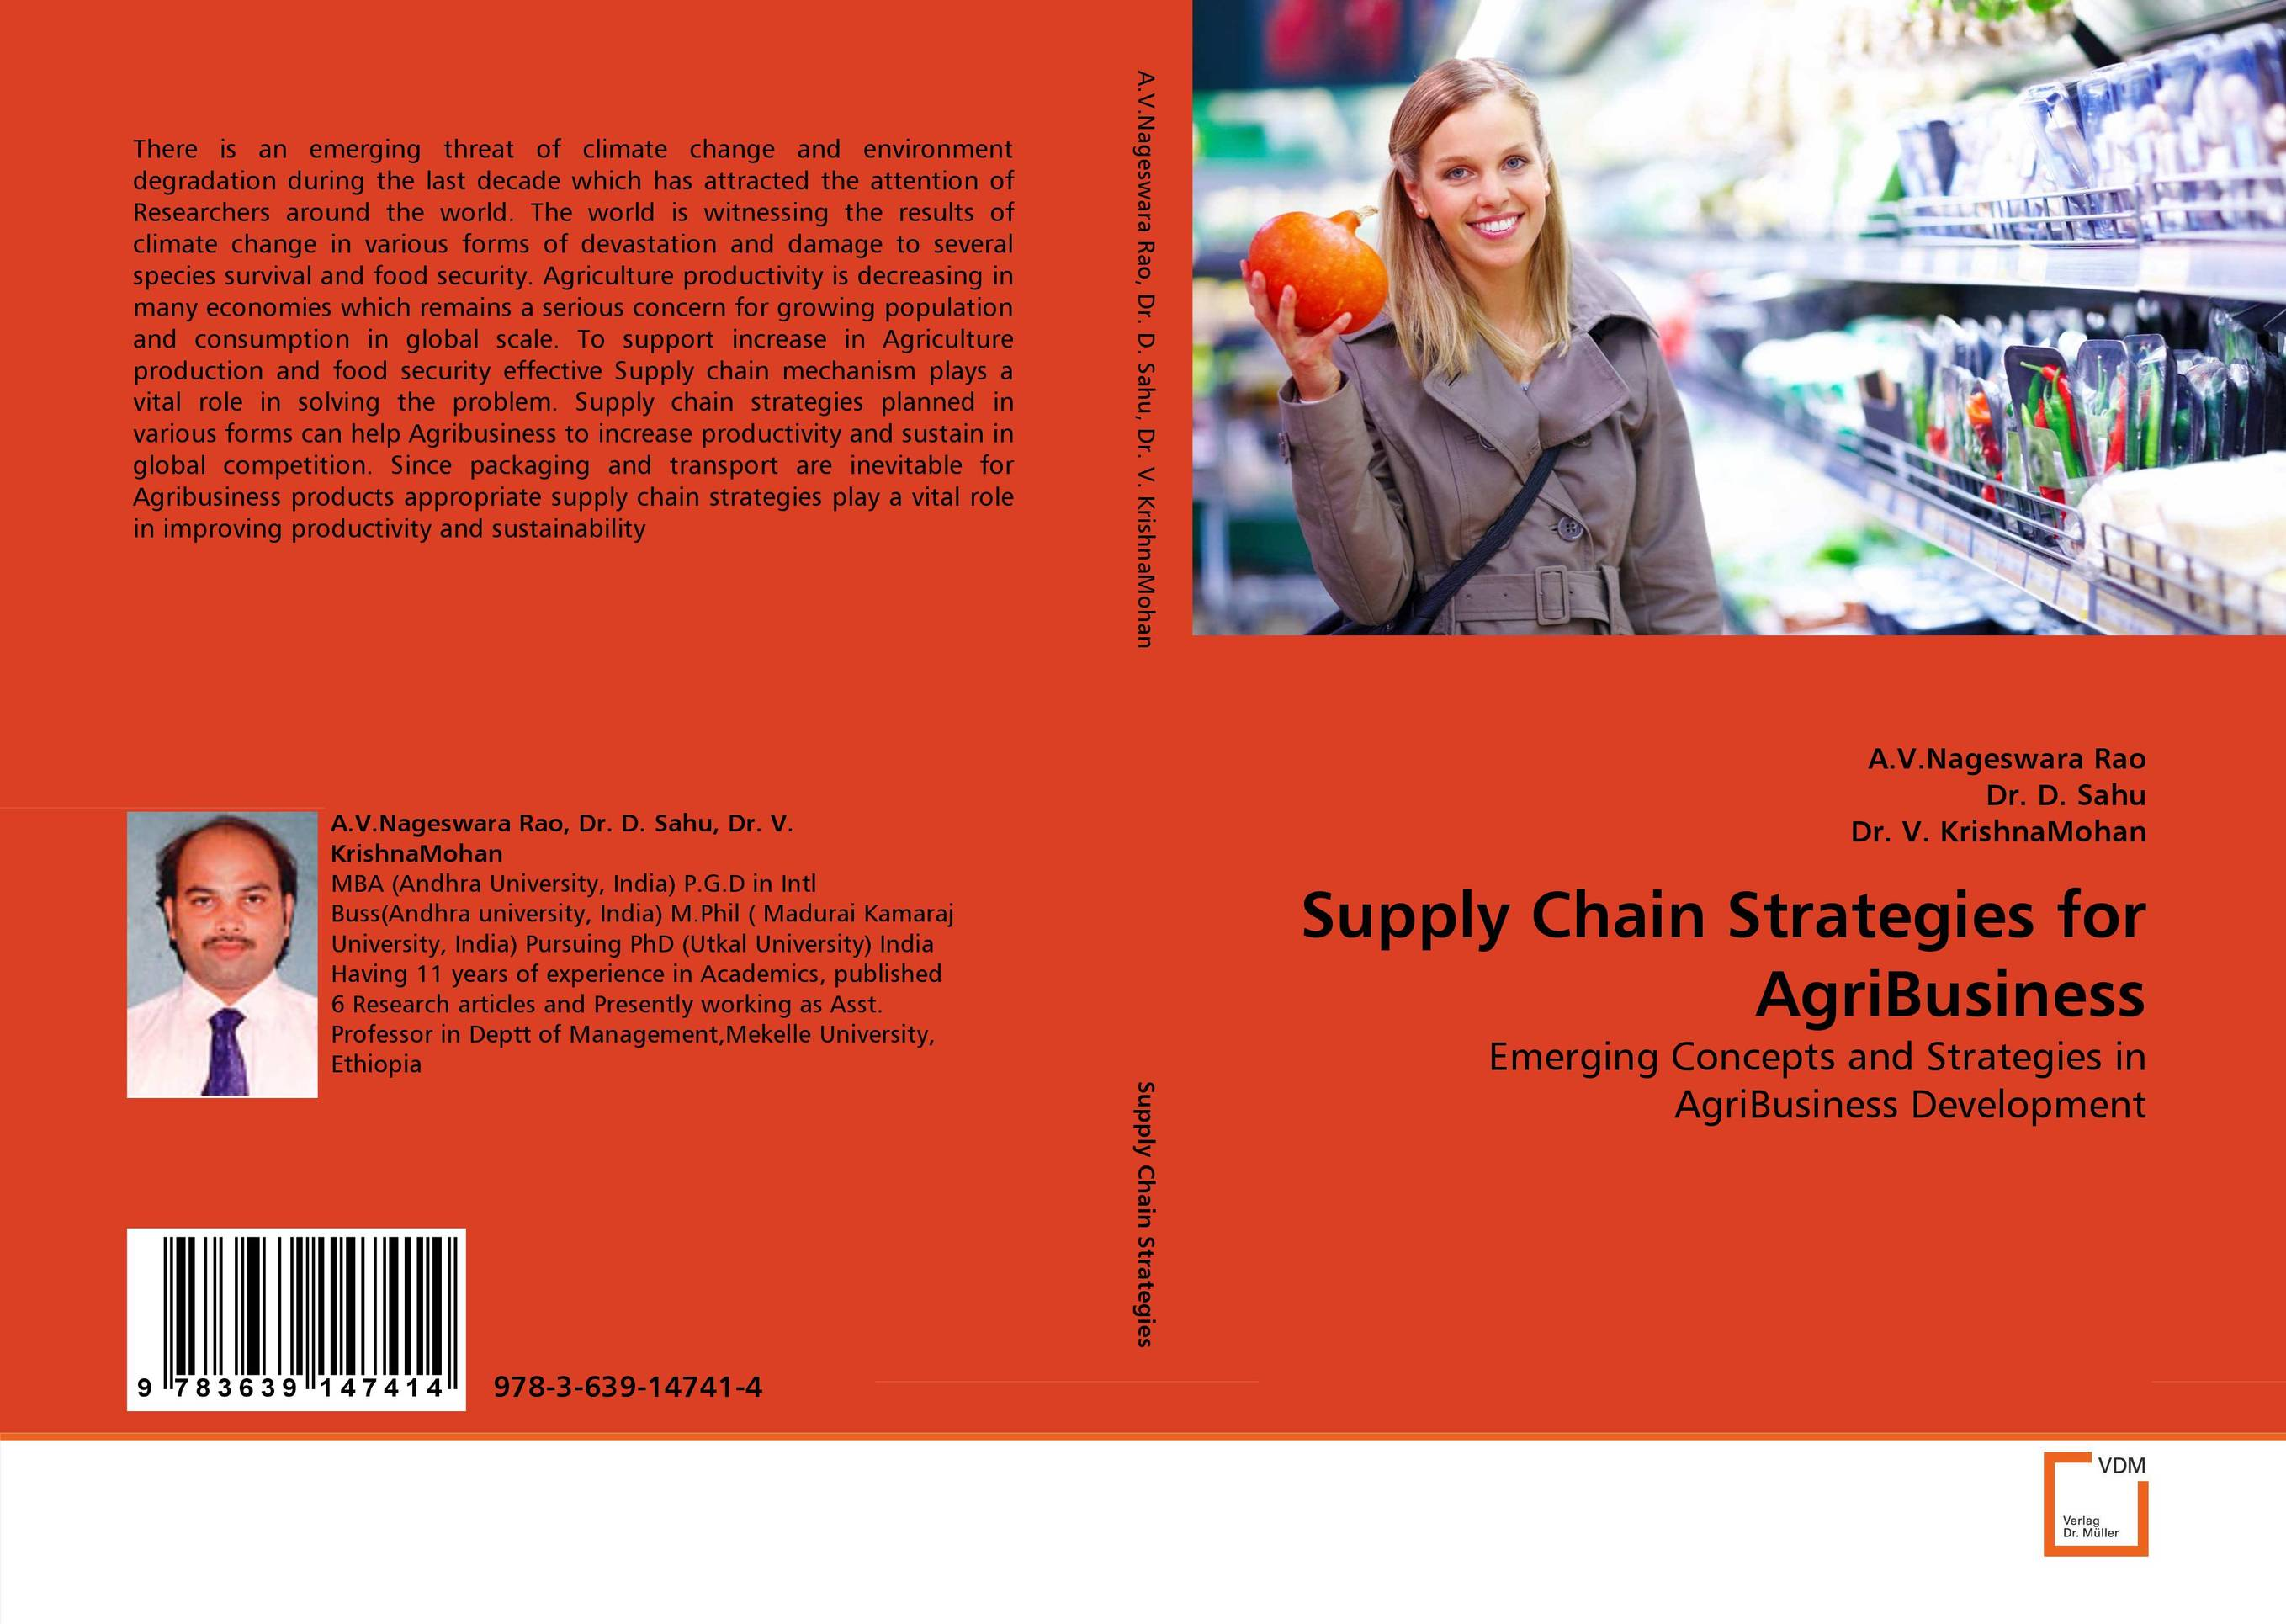 Supply Chain Strategies for AgriBusiness